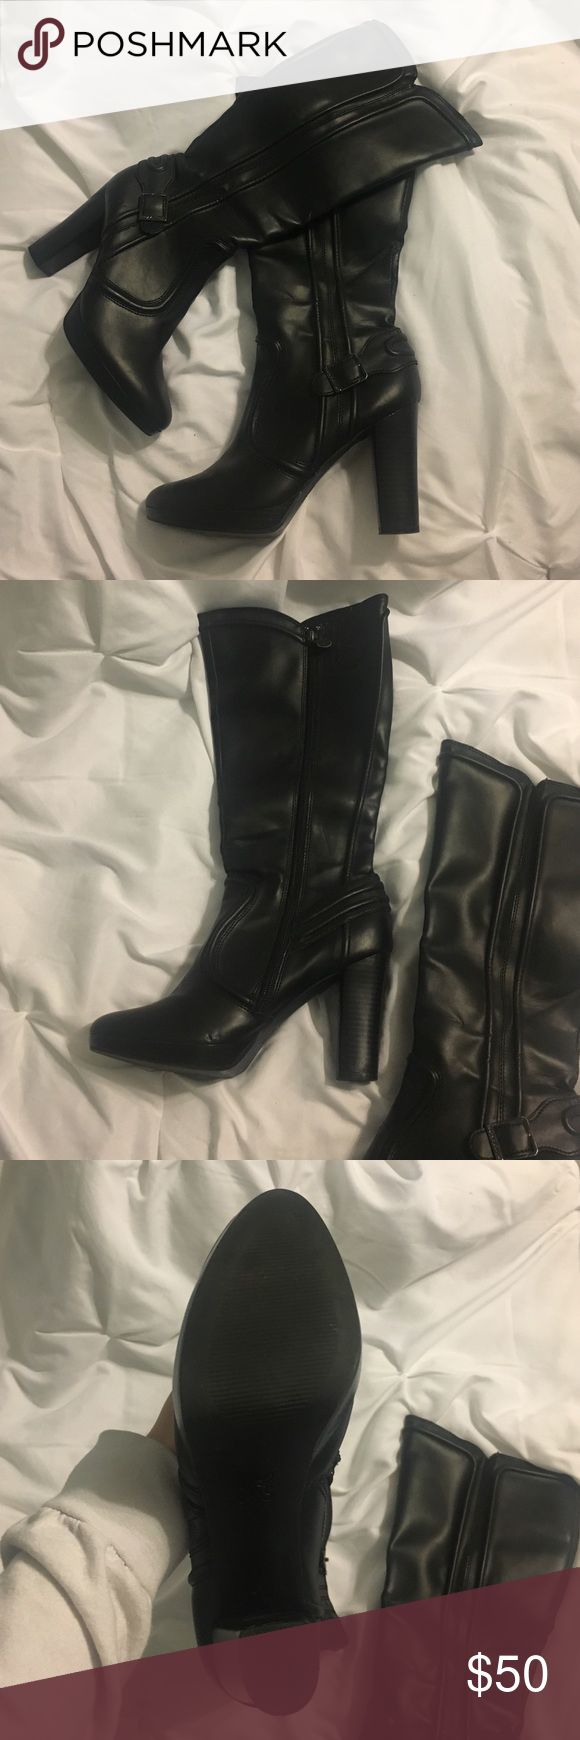 Simply Vera heeled boots Simply Vera Wang tall boots with heel. Very comfortable and in amazing condition. Simply Vera Vera Wang Shoes Heeled Boots